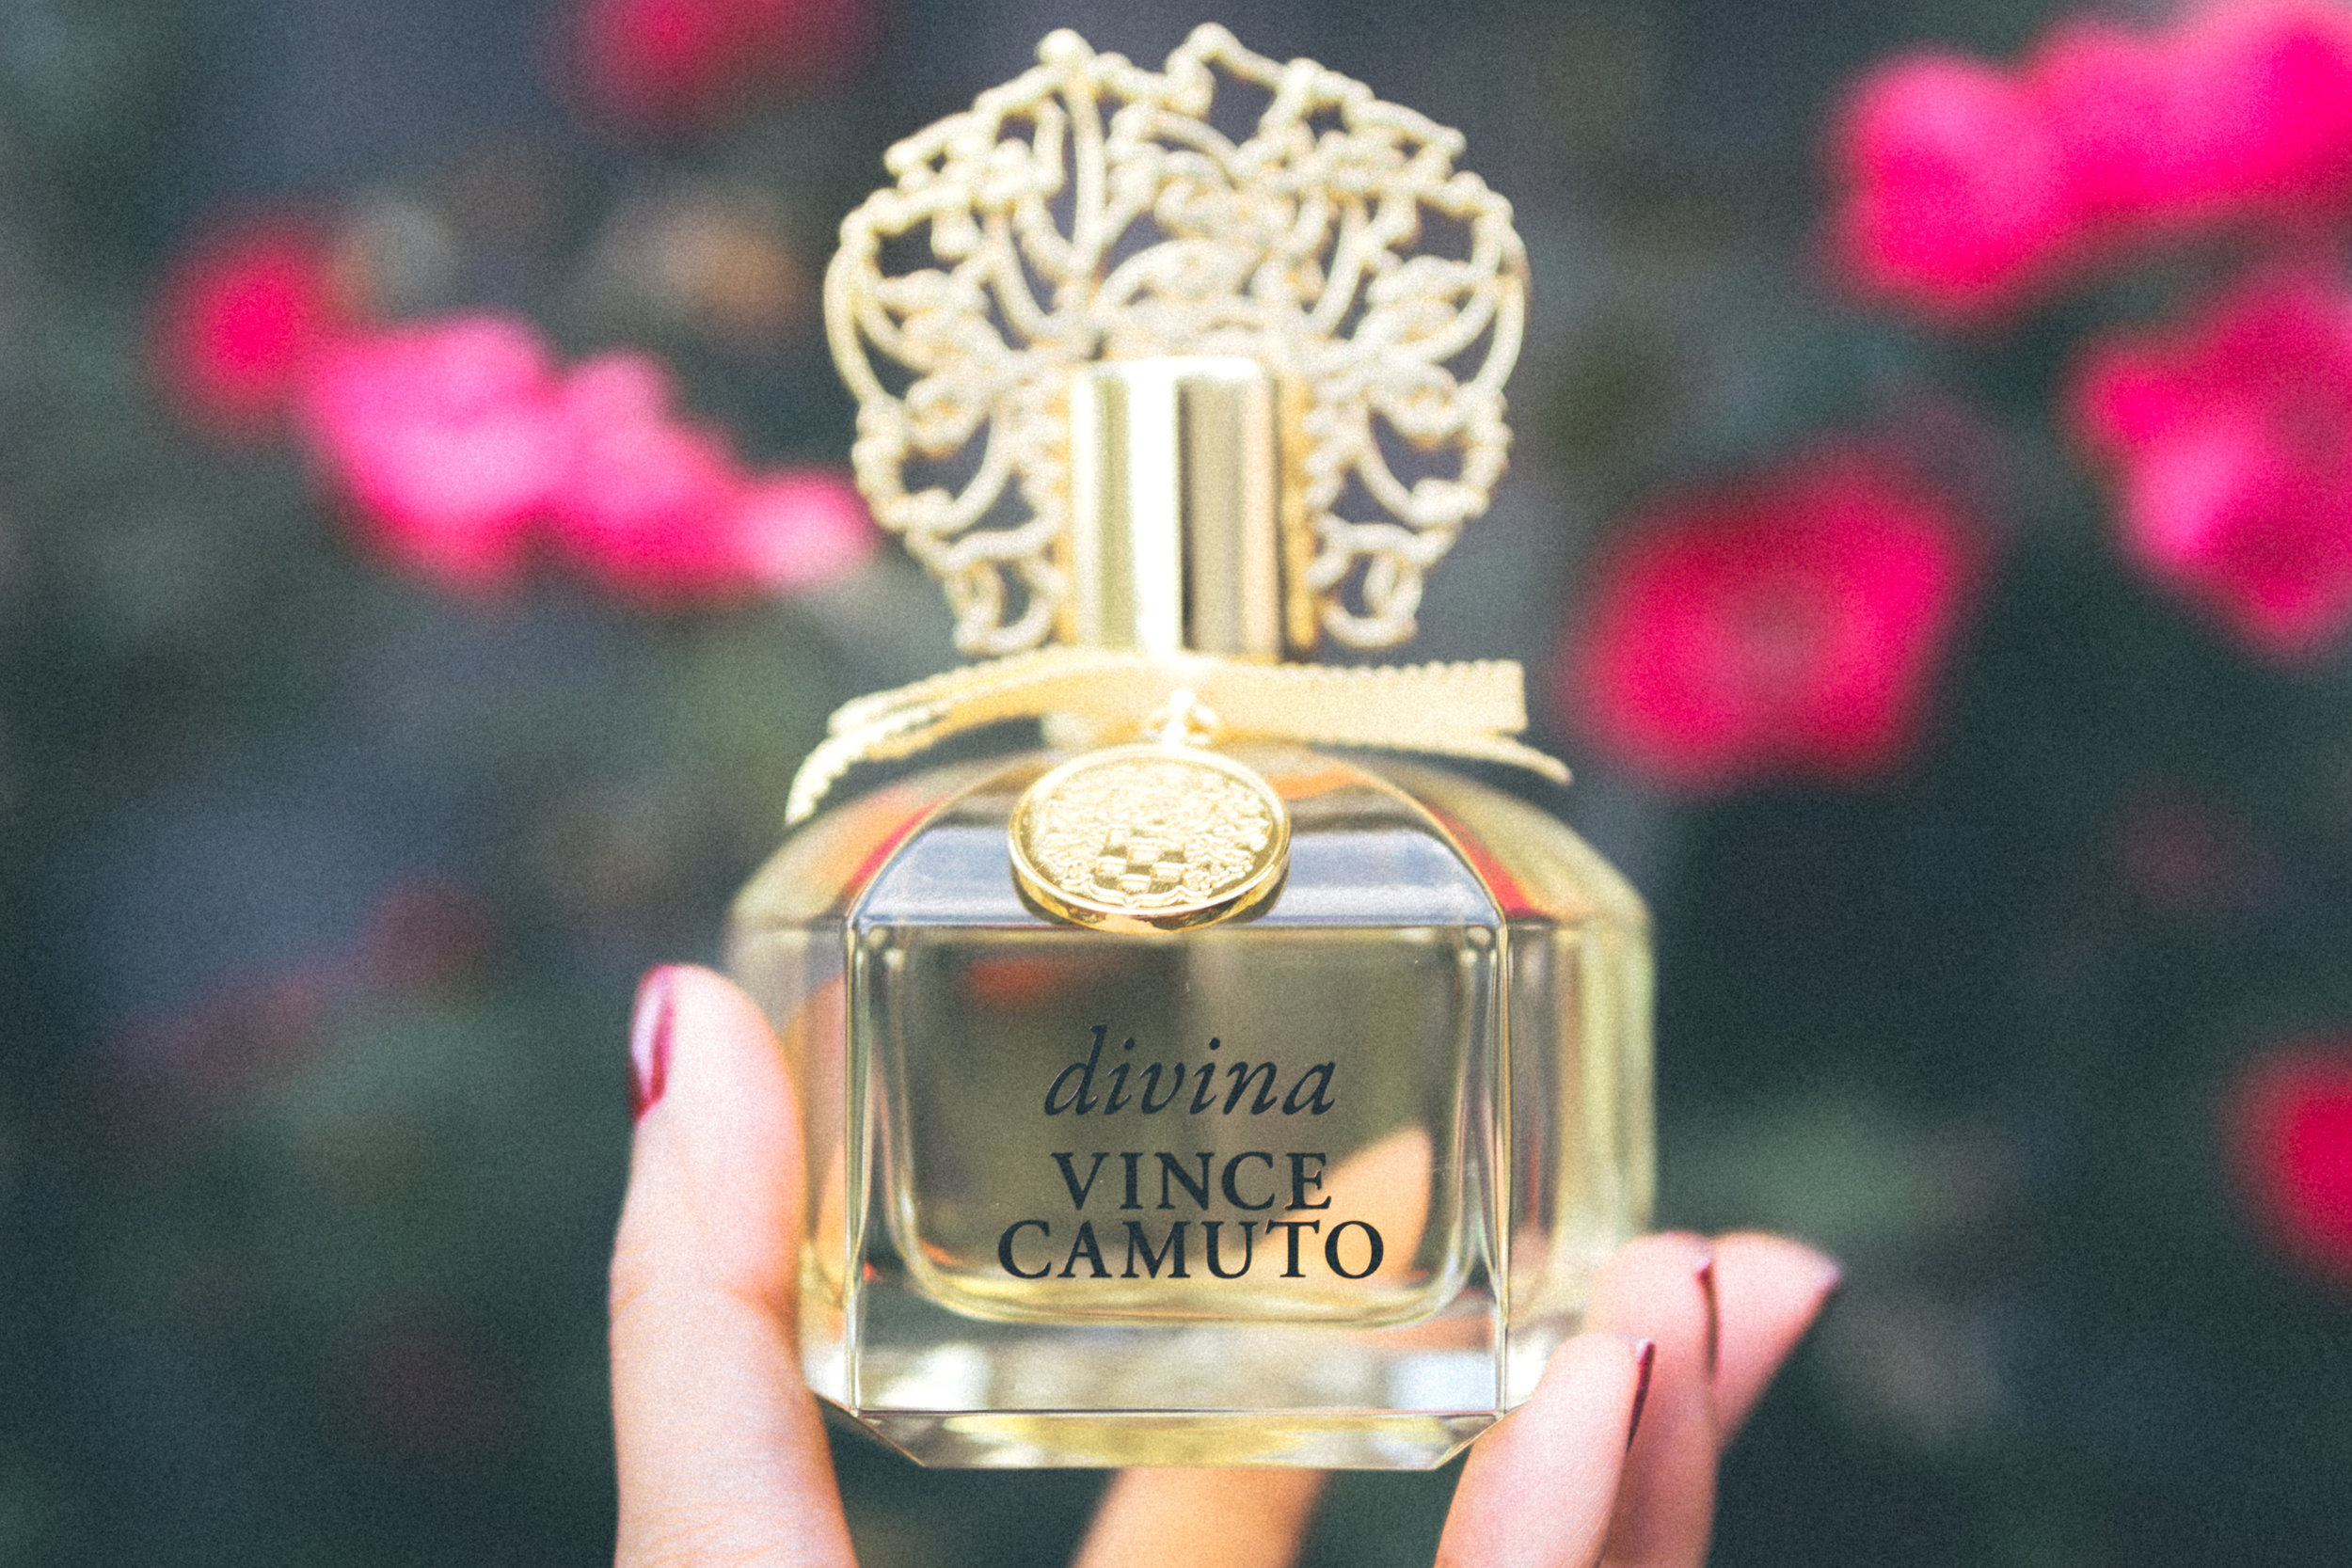 Divina Vince Camuto Eau de Parfum - Divina has easily become my special occasion fragrance. Sunkissed notes of pamplemousse, mimosa blossom, &warm musk paired with sunflower,heliotrope flower &creamy sandalwood.